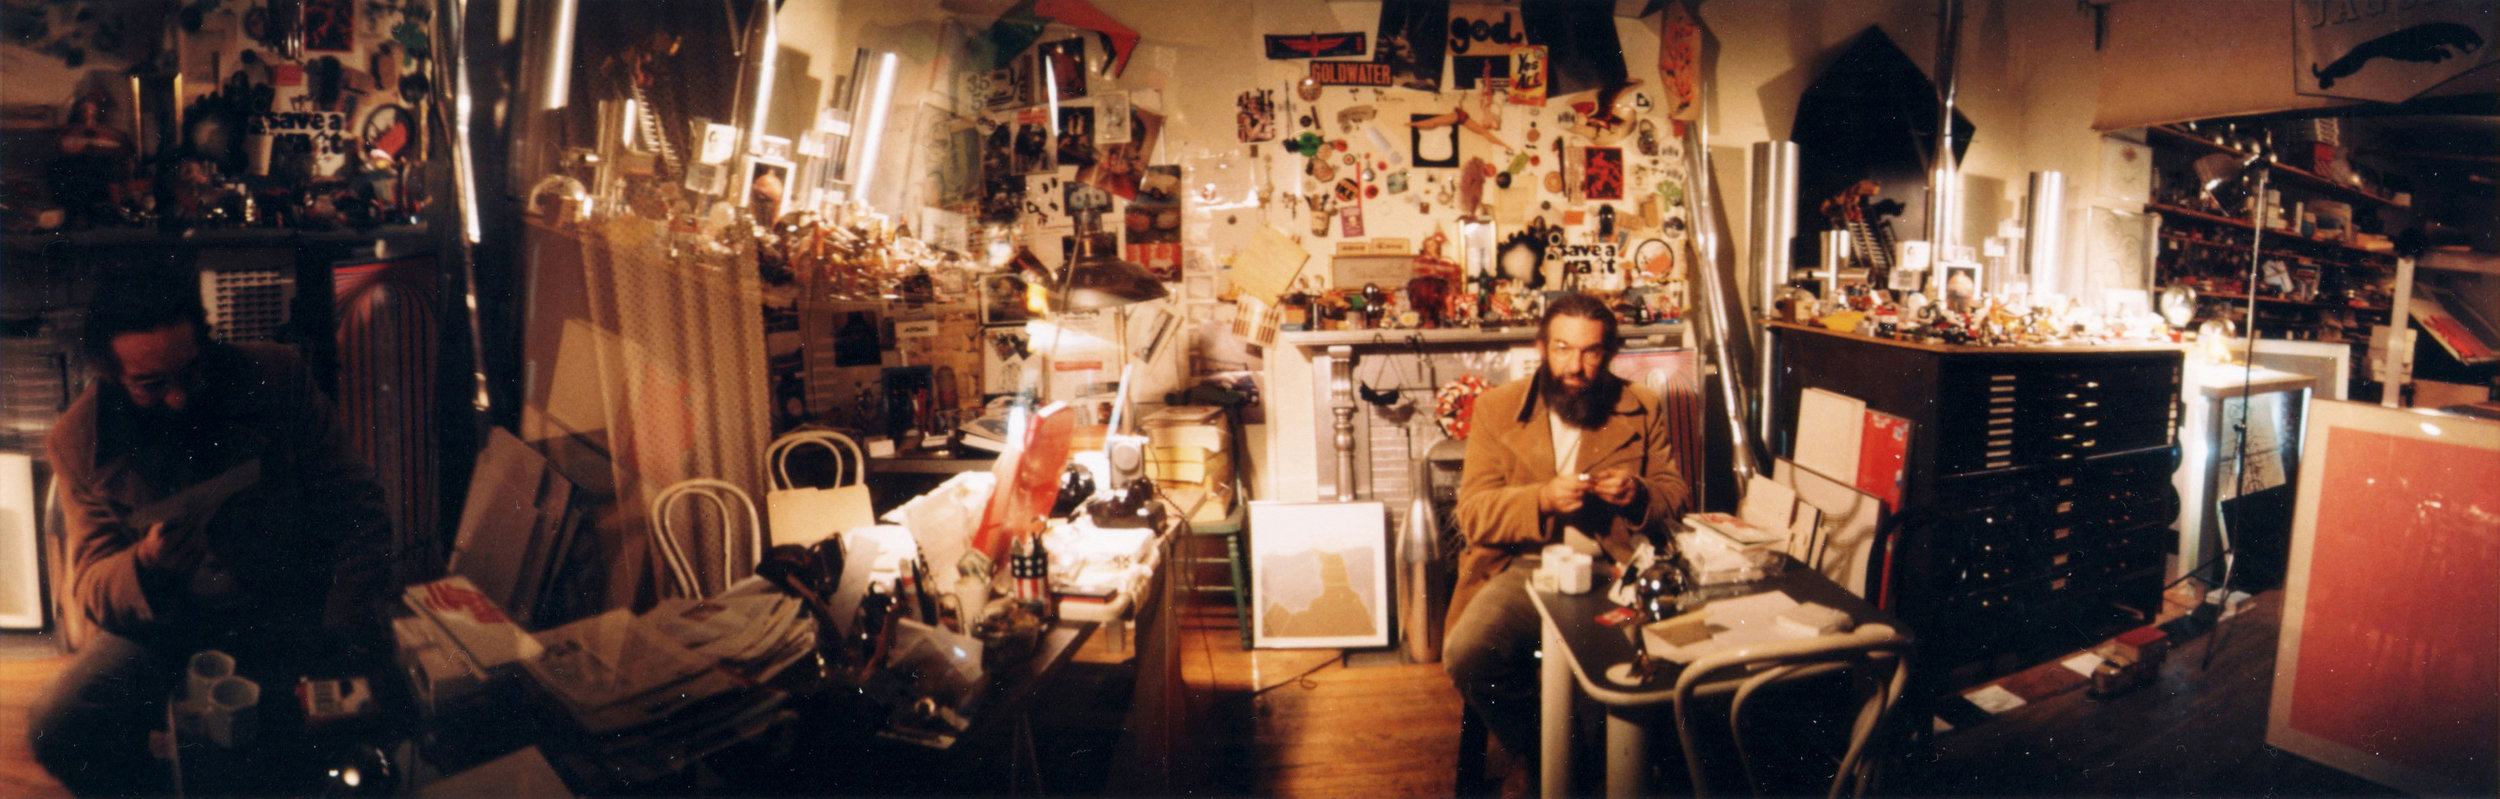 Reyner Banham visiting GOD & CO in his studio, Montreal 1973